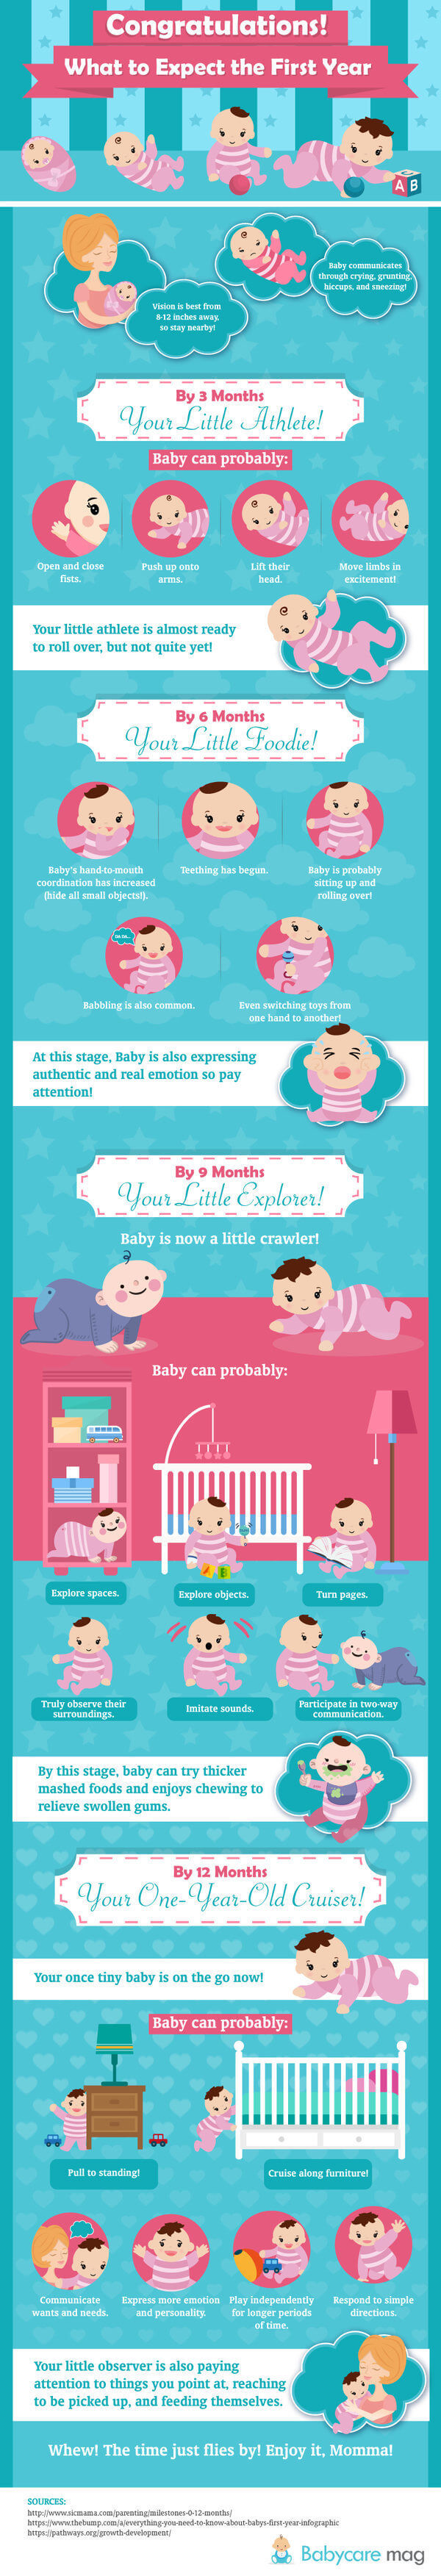 Baby Milestones: What to Expect the First Year